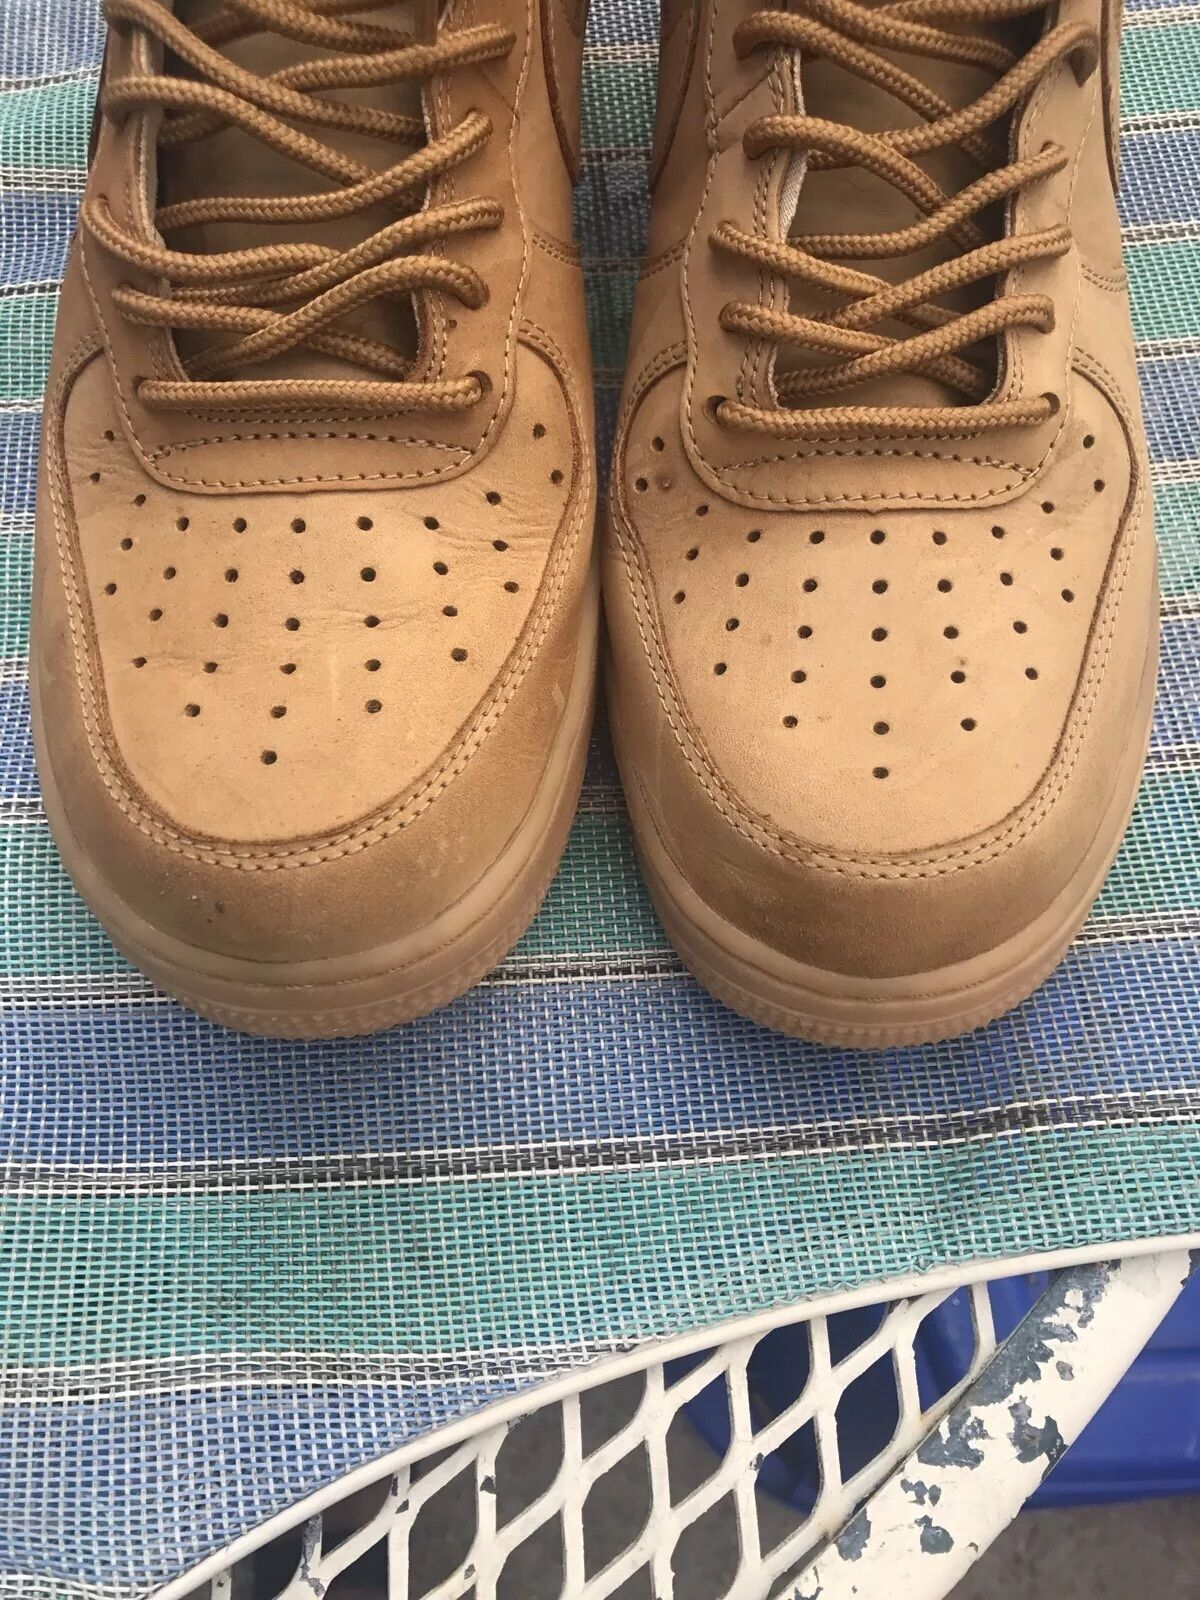 Air Force 1 conditions are 7 to 10 still life in them Cheap women's shoes women's shoes